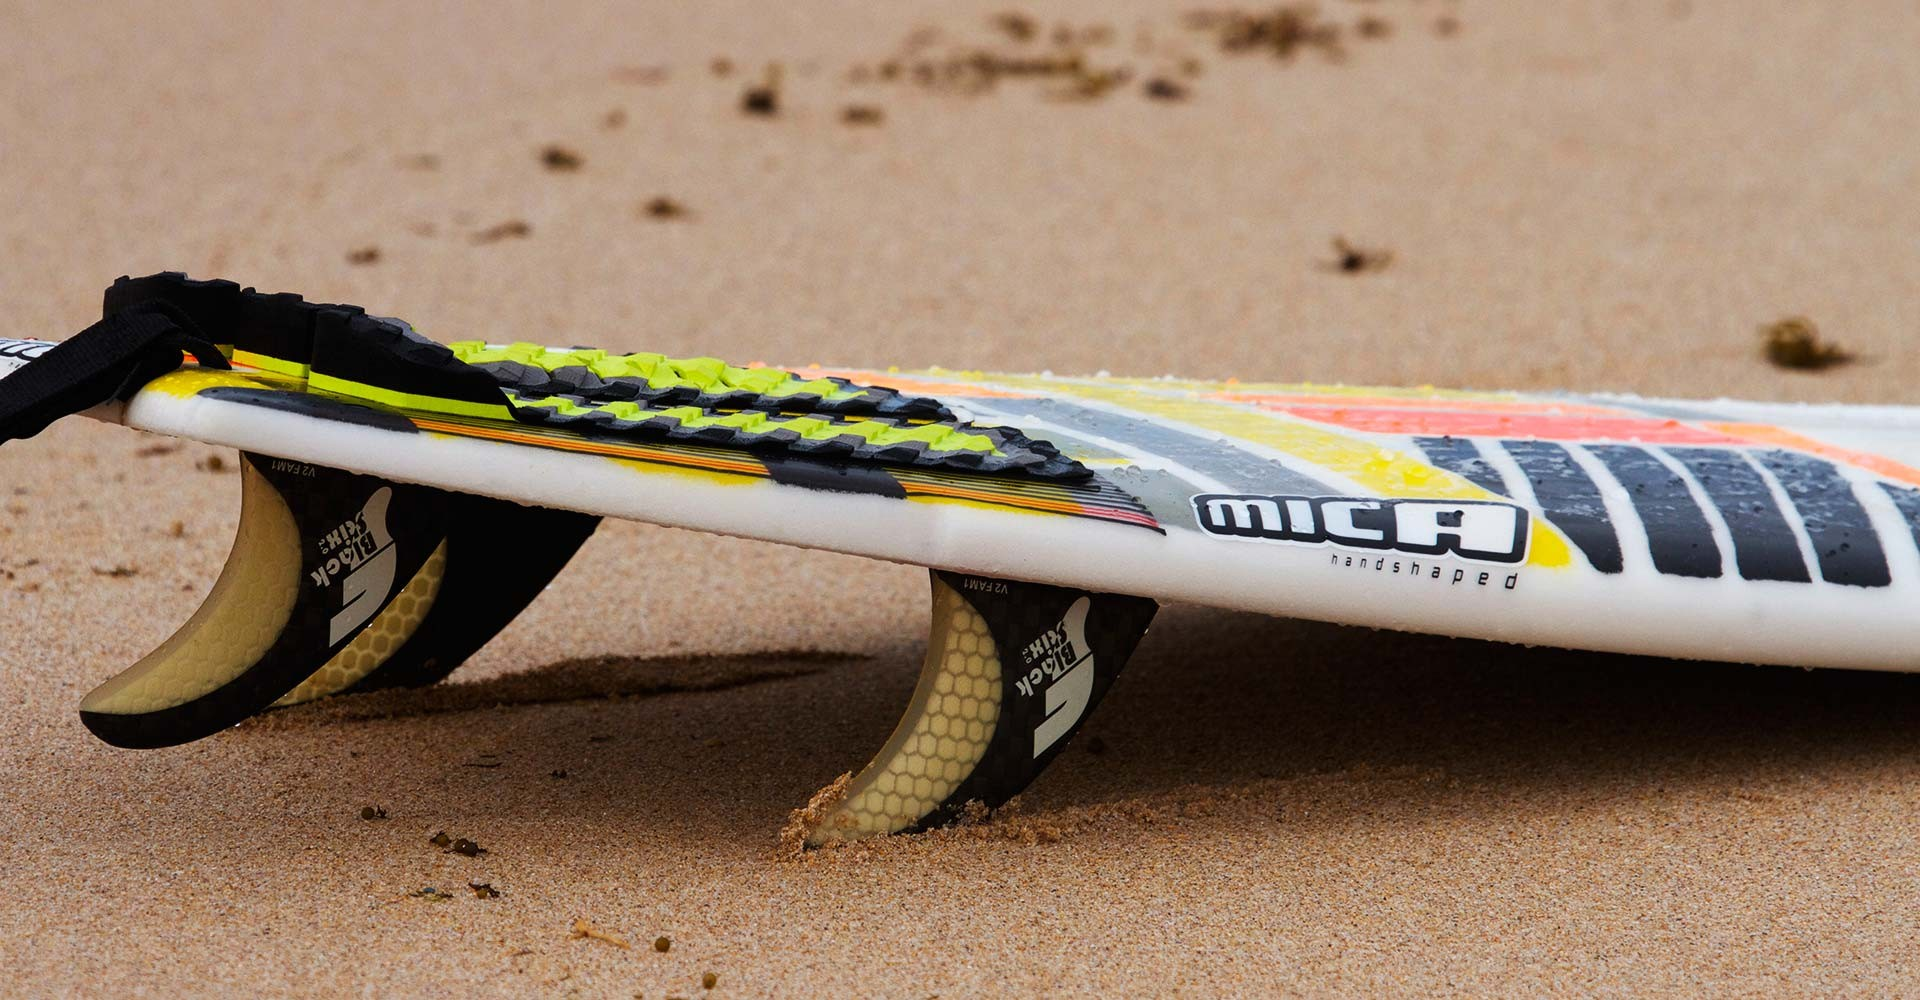 surf, Micasurfboards, Mica, Ericeira, Surfboards, Surfing, Custom-Surfboard, prancha-de-surf